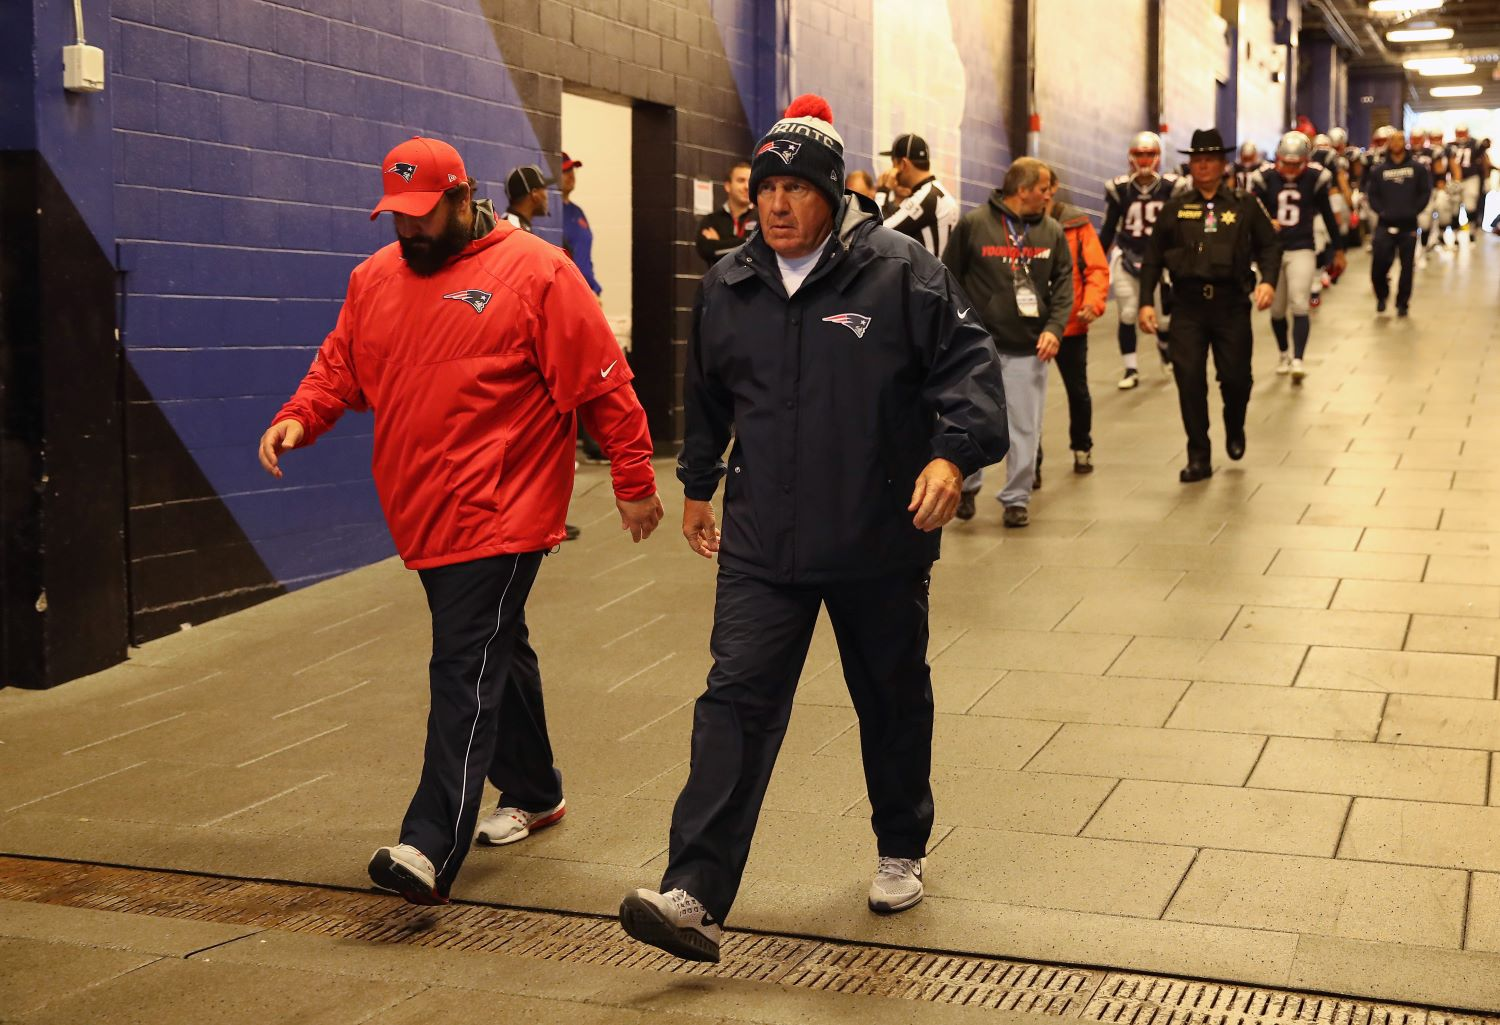 Bill Belichick has gotten so desperate that he's bringing back Matt Patricia to save the New England Patriots from completely falling apart.